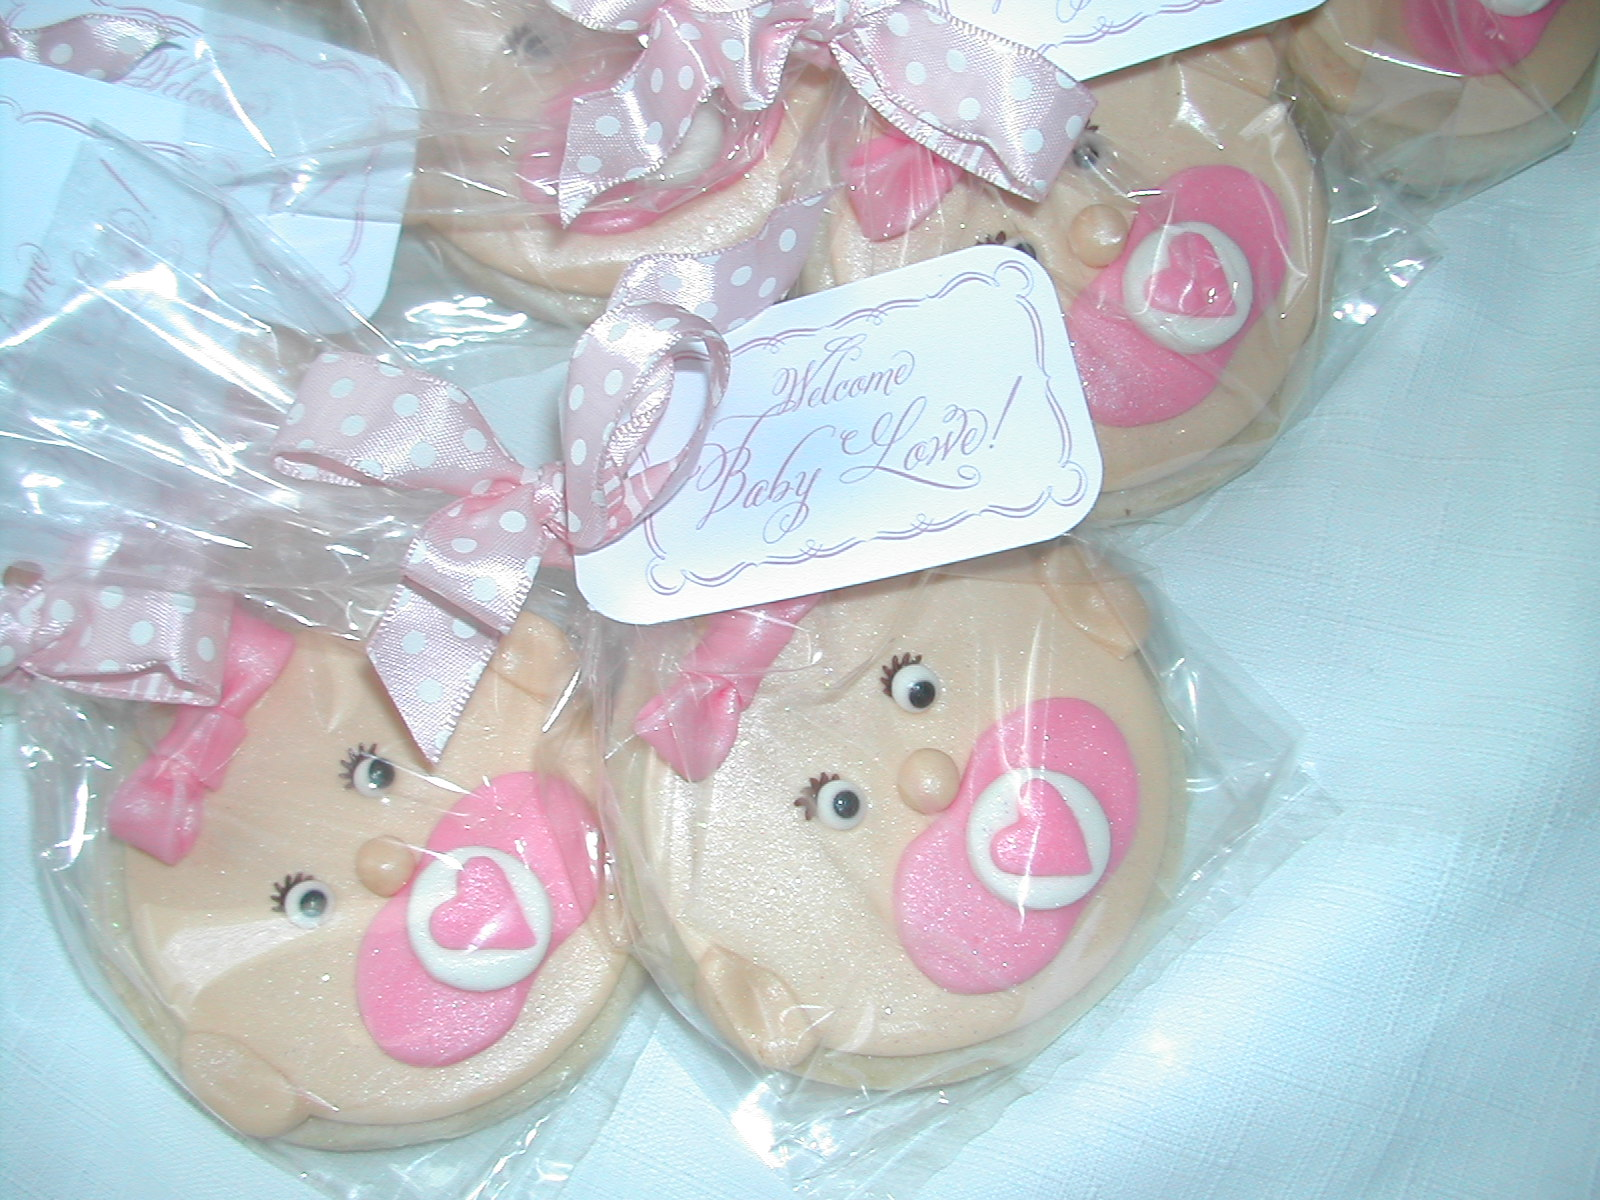 Darling Baby Shower Favors